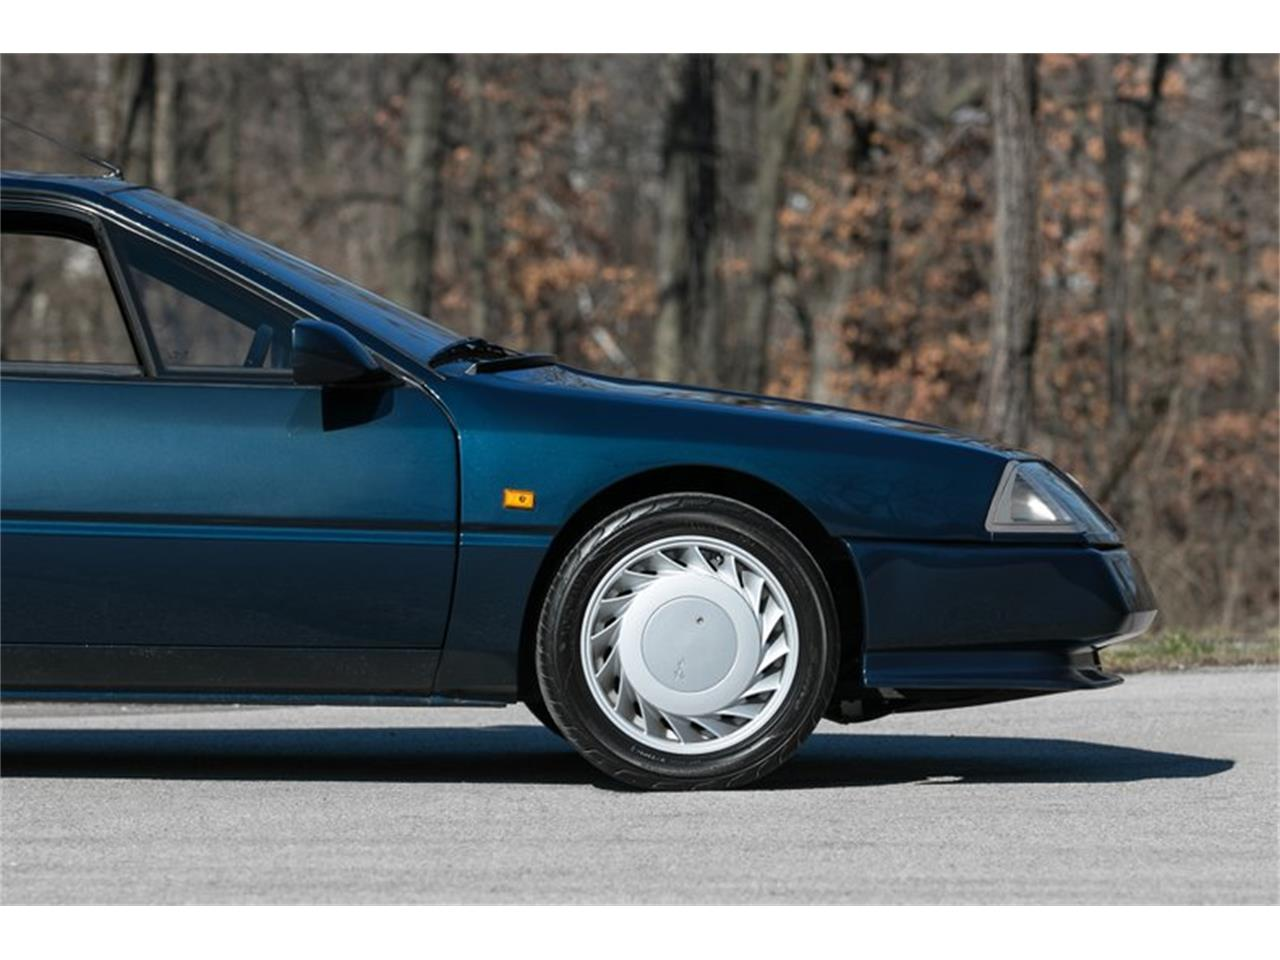 Large Picture of 1990 Alpine located in St. Charles Missouri - $27,500.00 Offered by Fast Lane Classic Cars Inc. - N1T4